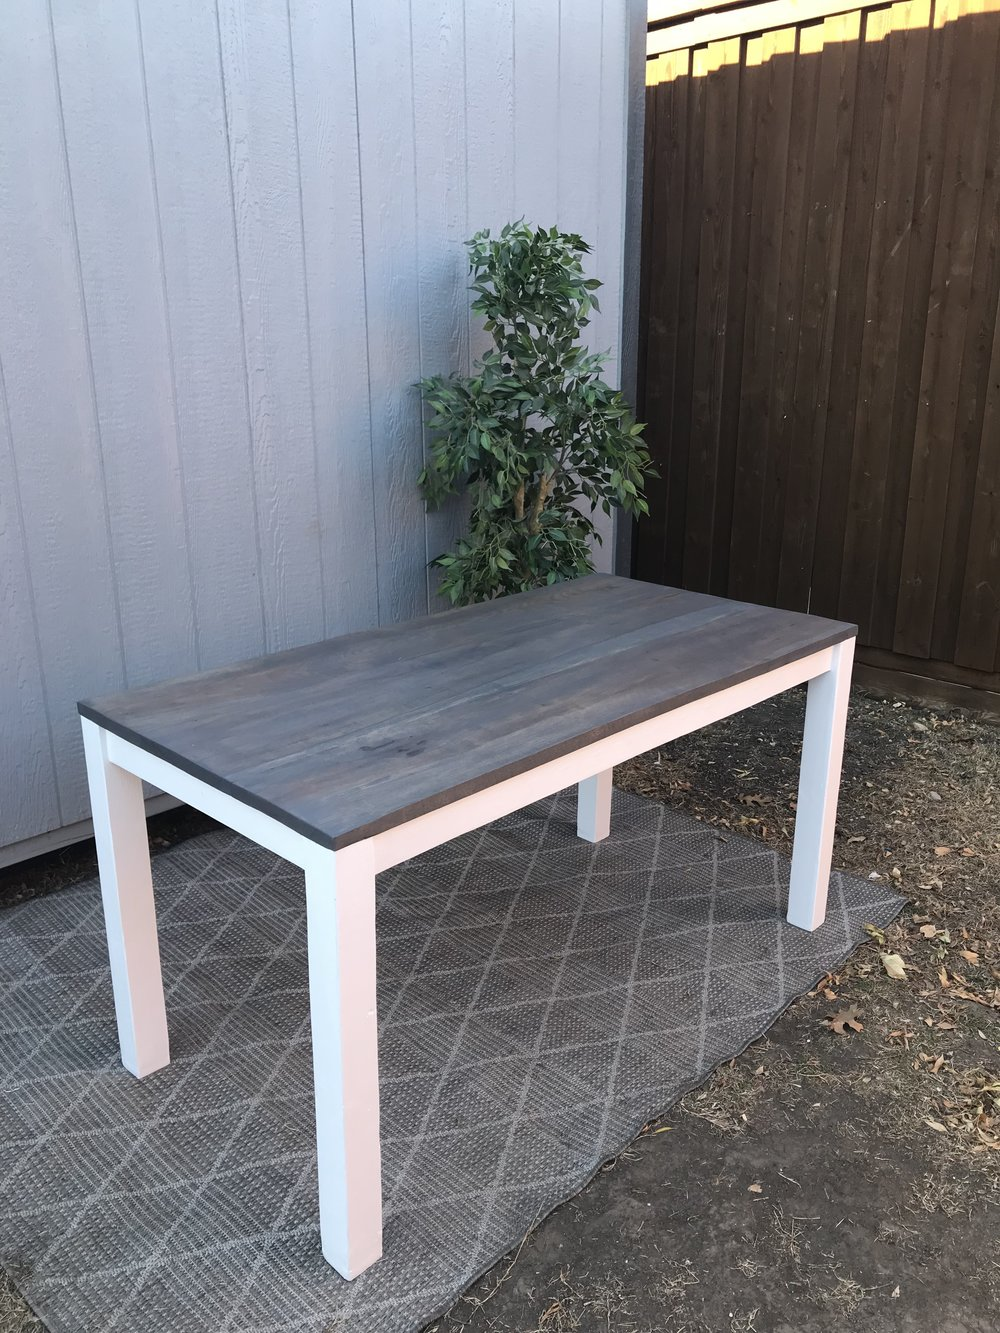 wood: PECAN/ stain: V. weathered gray